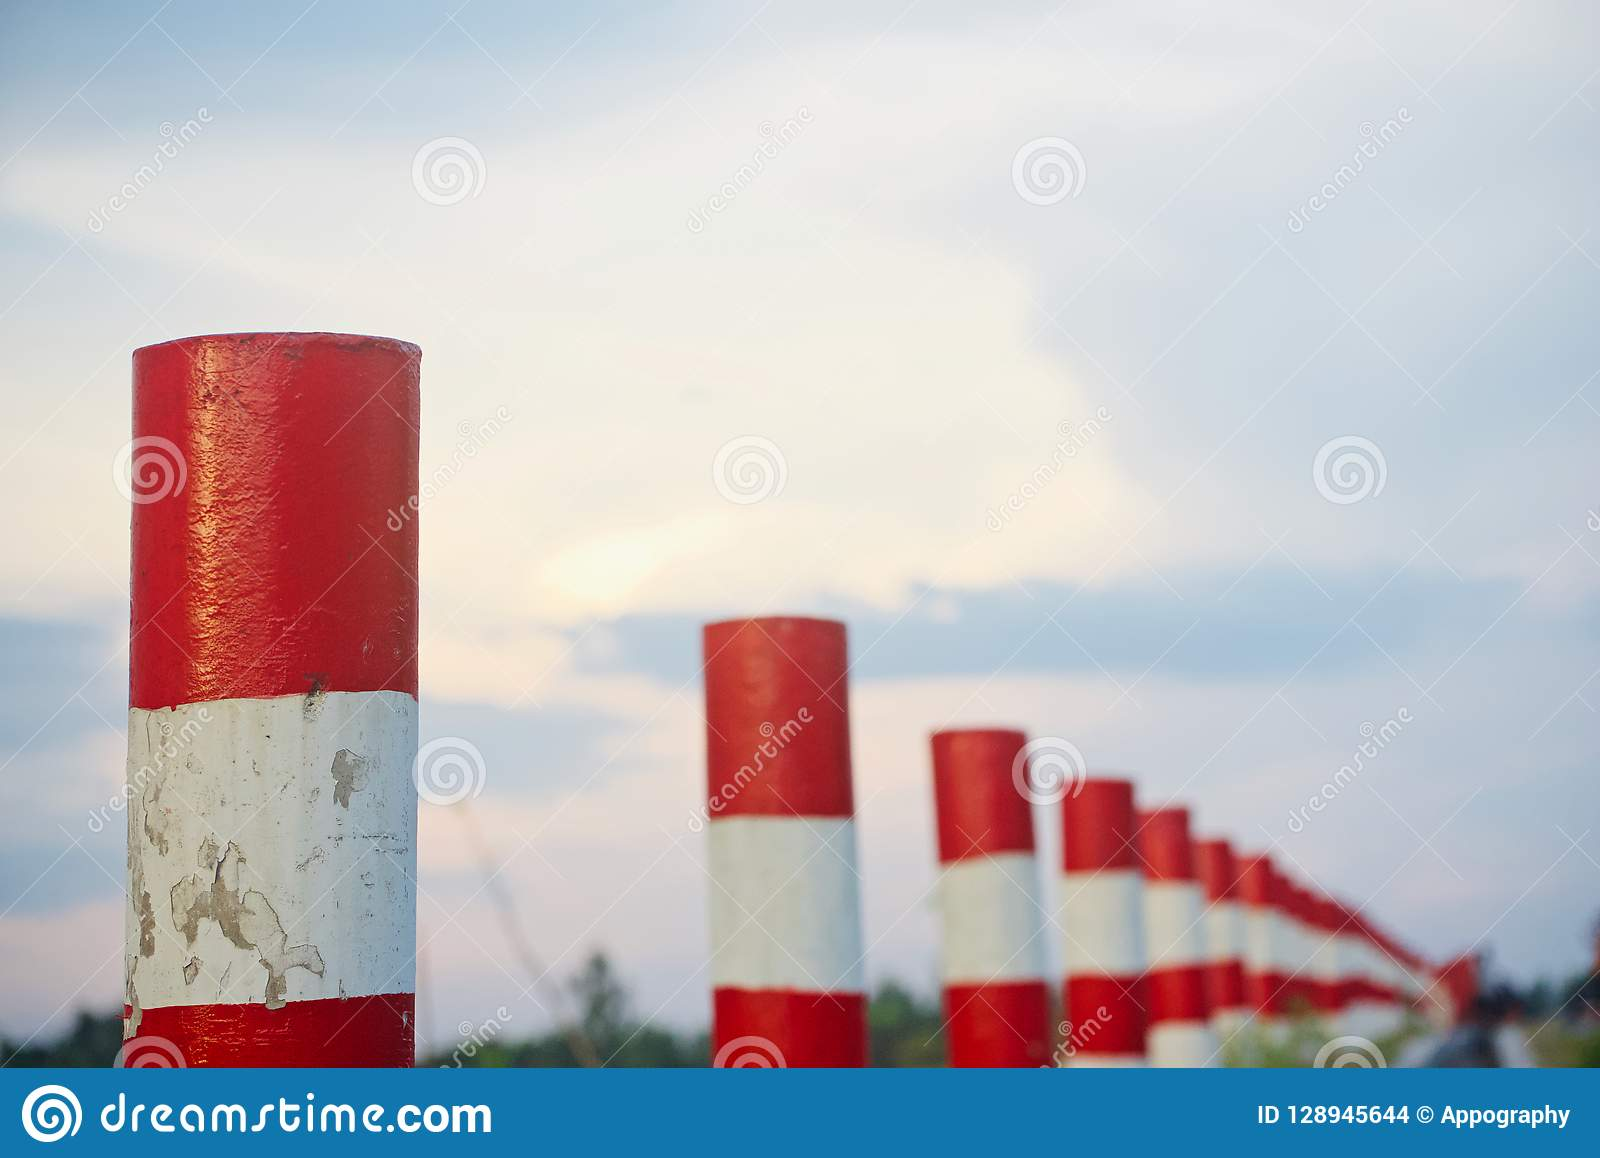 Concrete pillars isolated unique photo